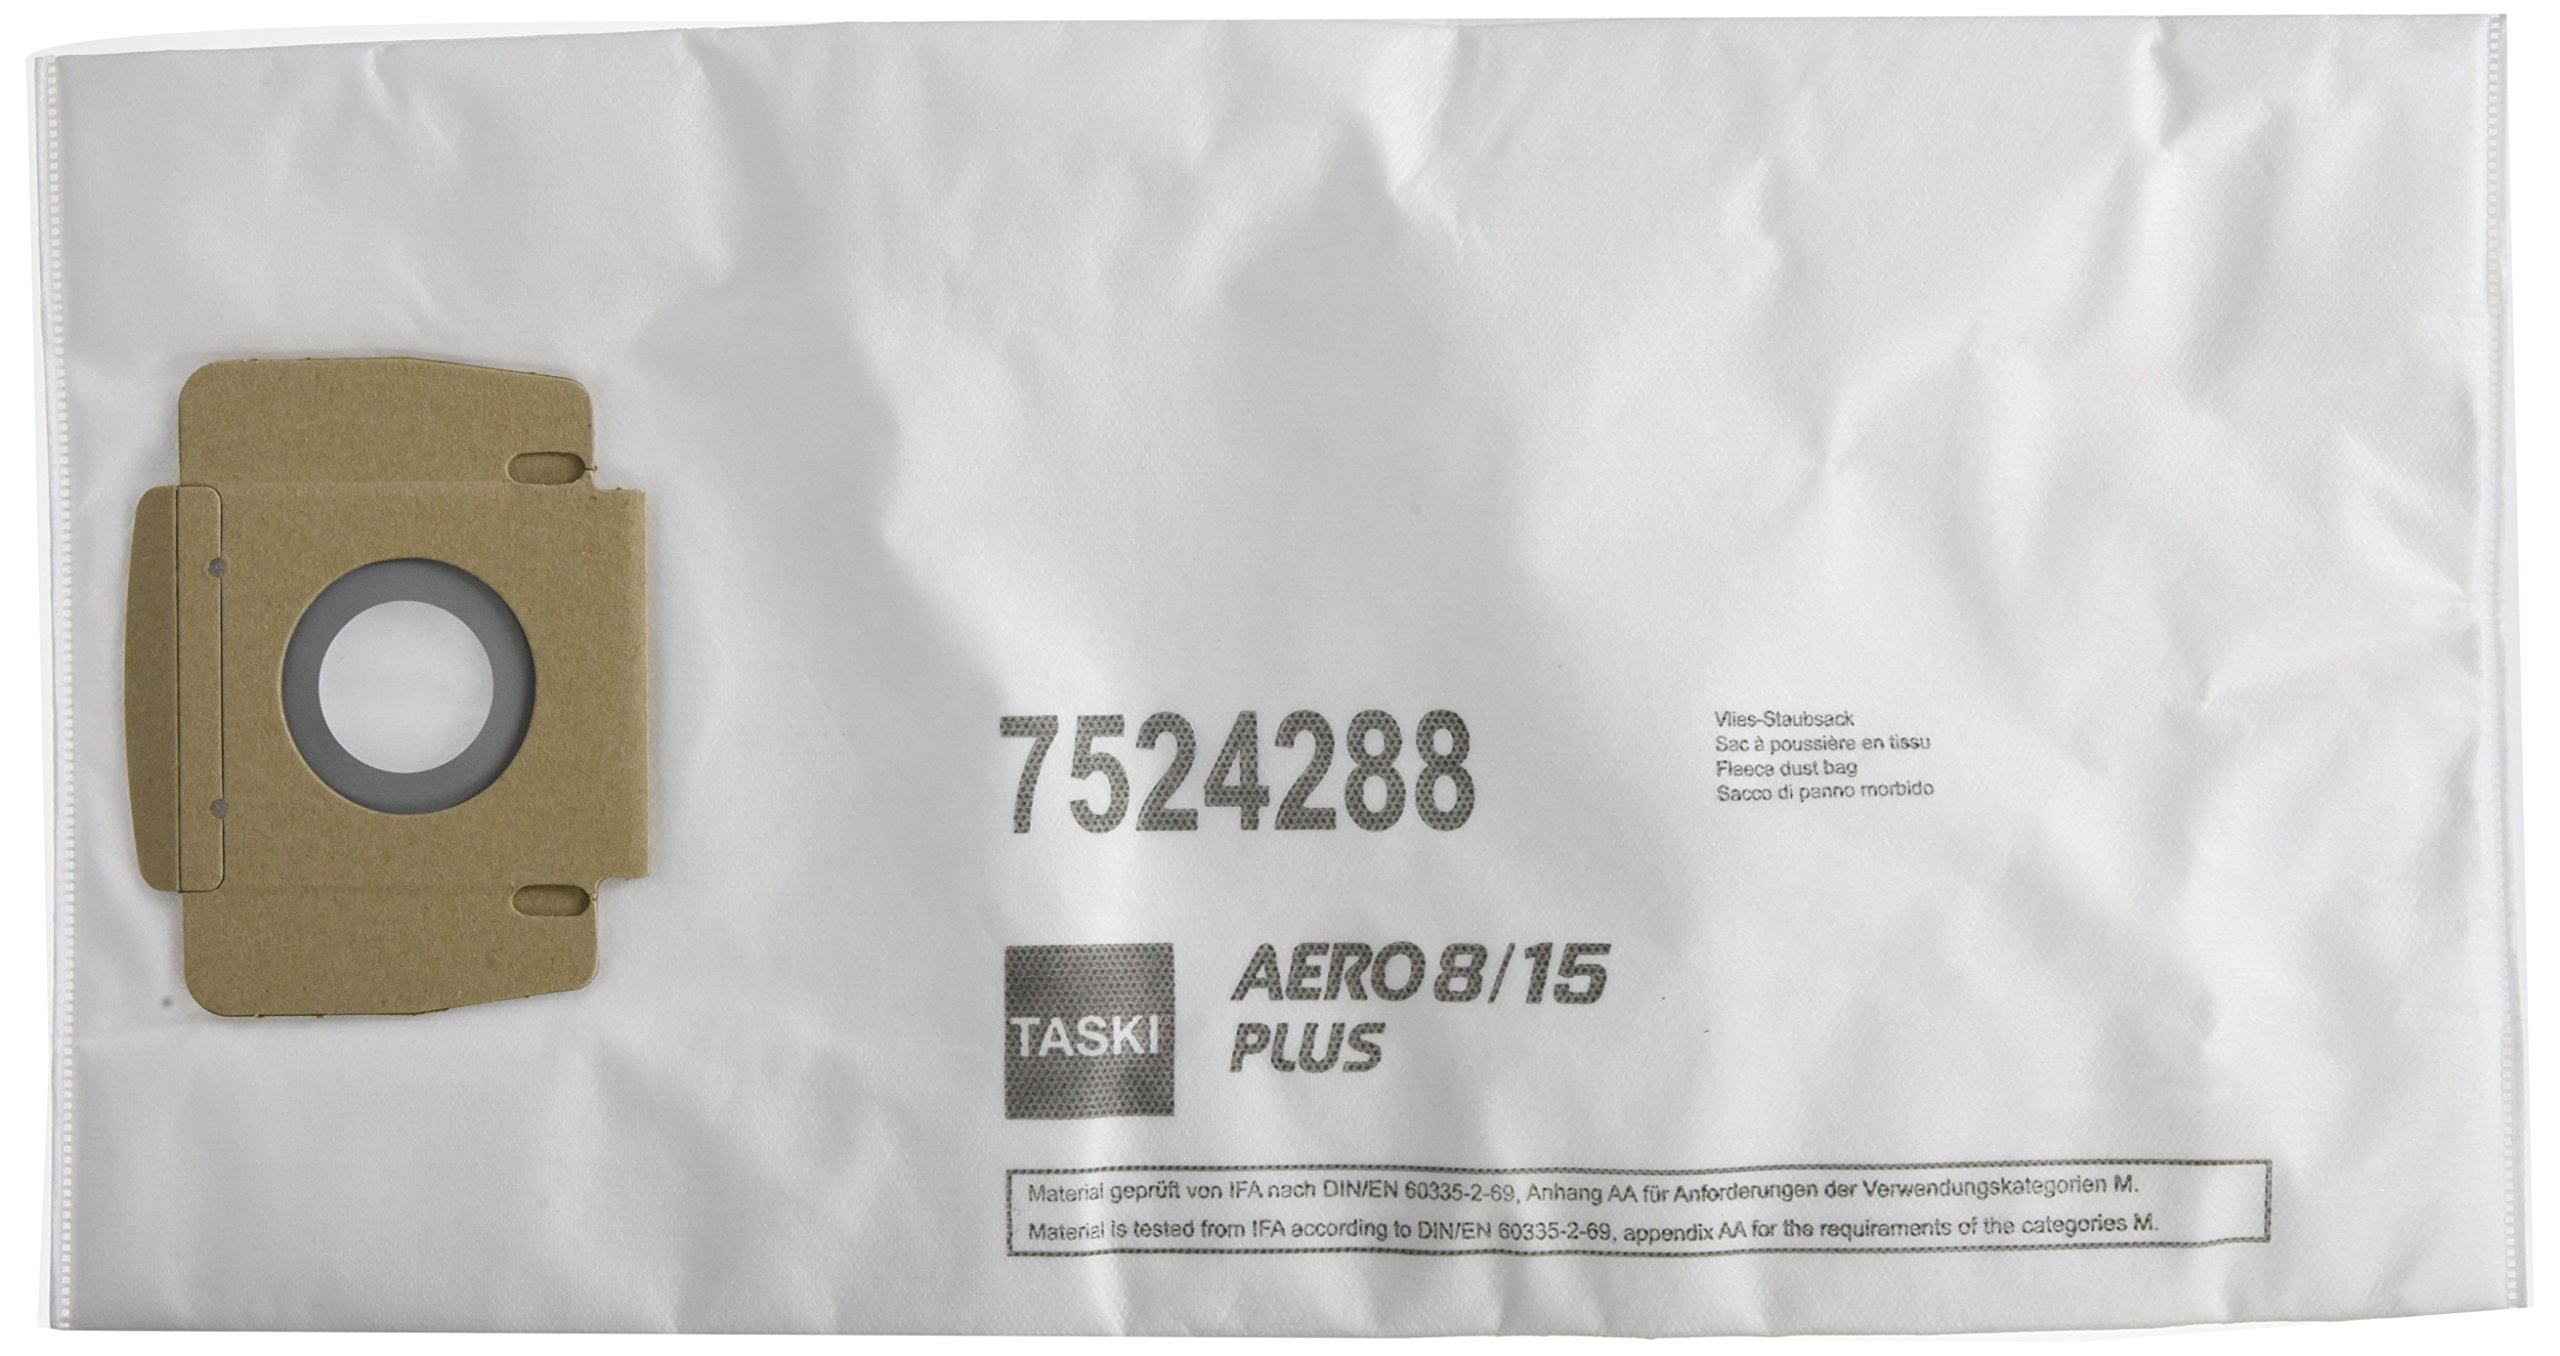 TASKI Aero 8/15 PLUS Disposable Fleece Bags, White by Taski